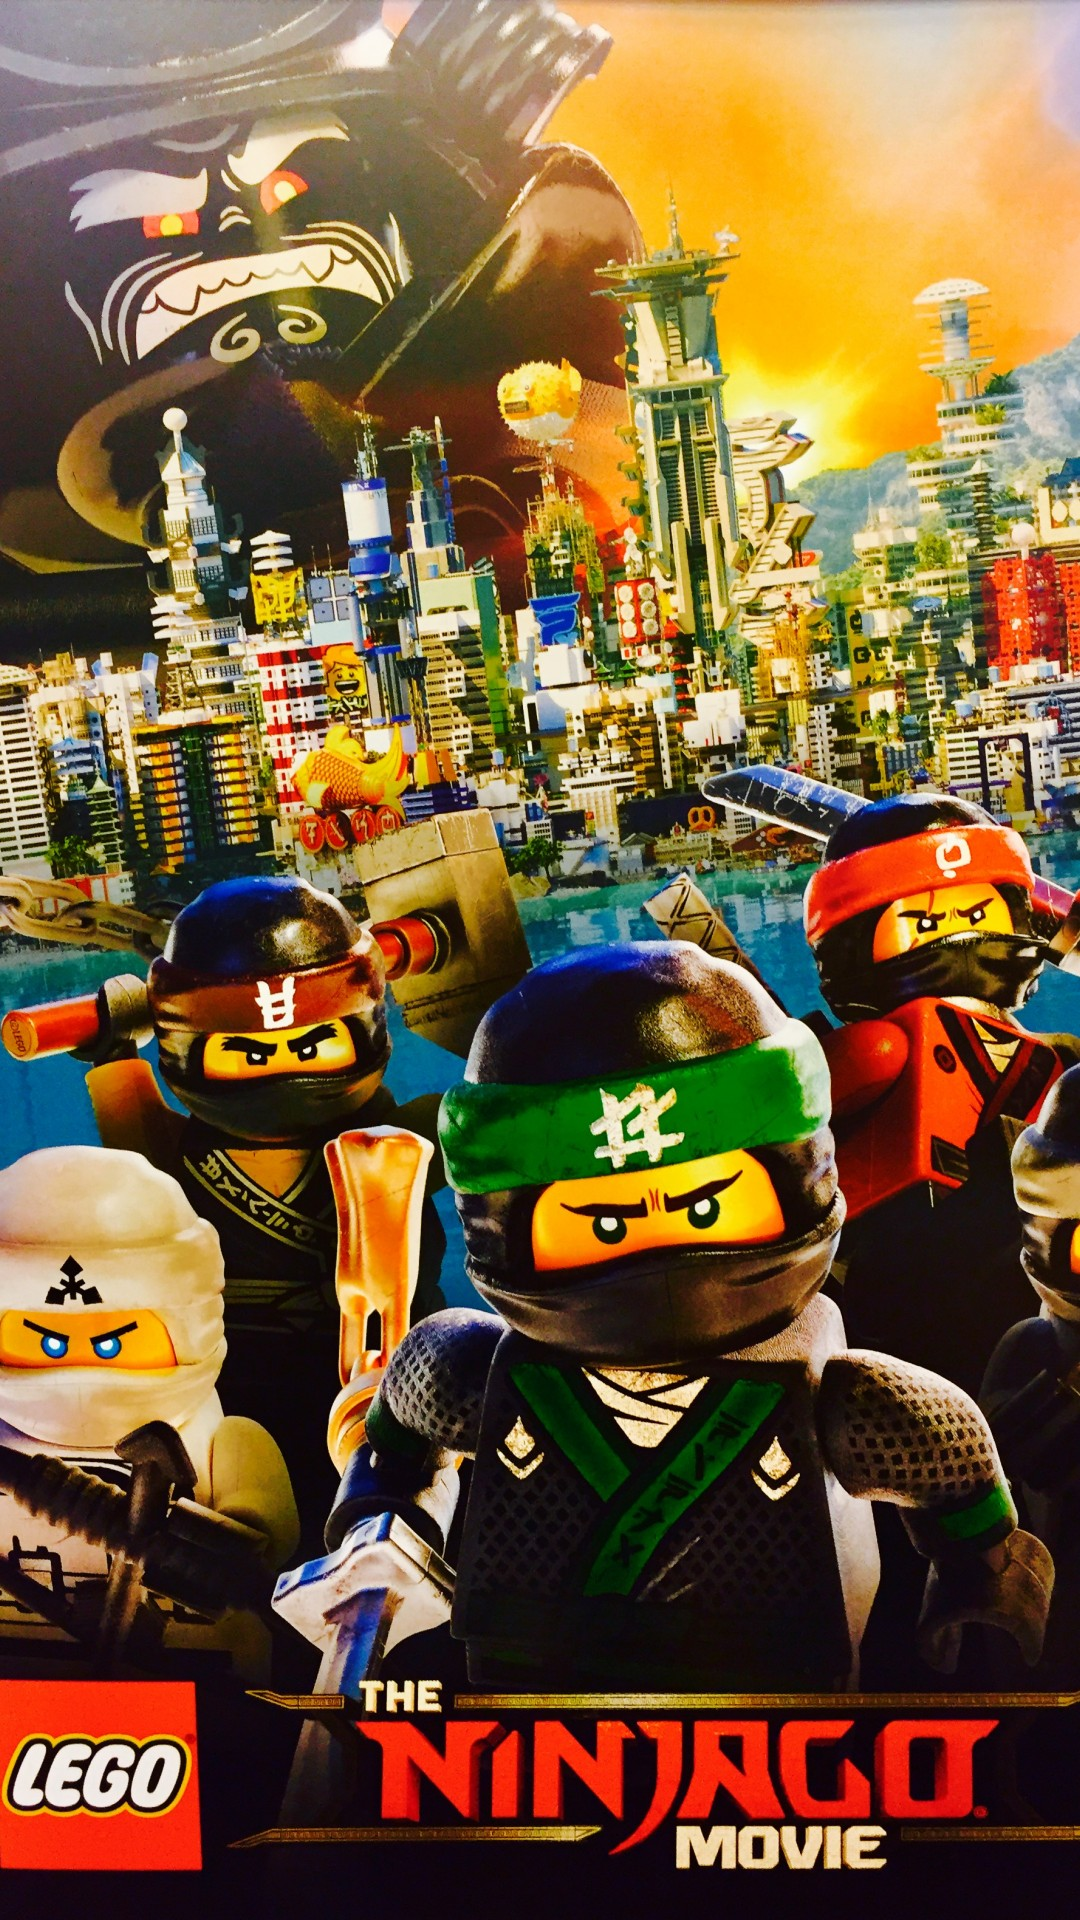 Lego wallpaper iphone 6 plus - Ninjago phone wallpaper ...